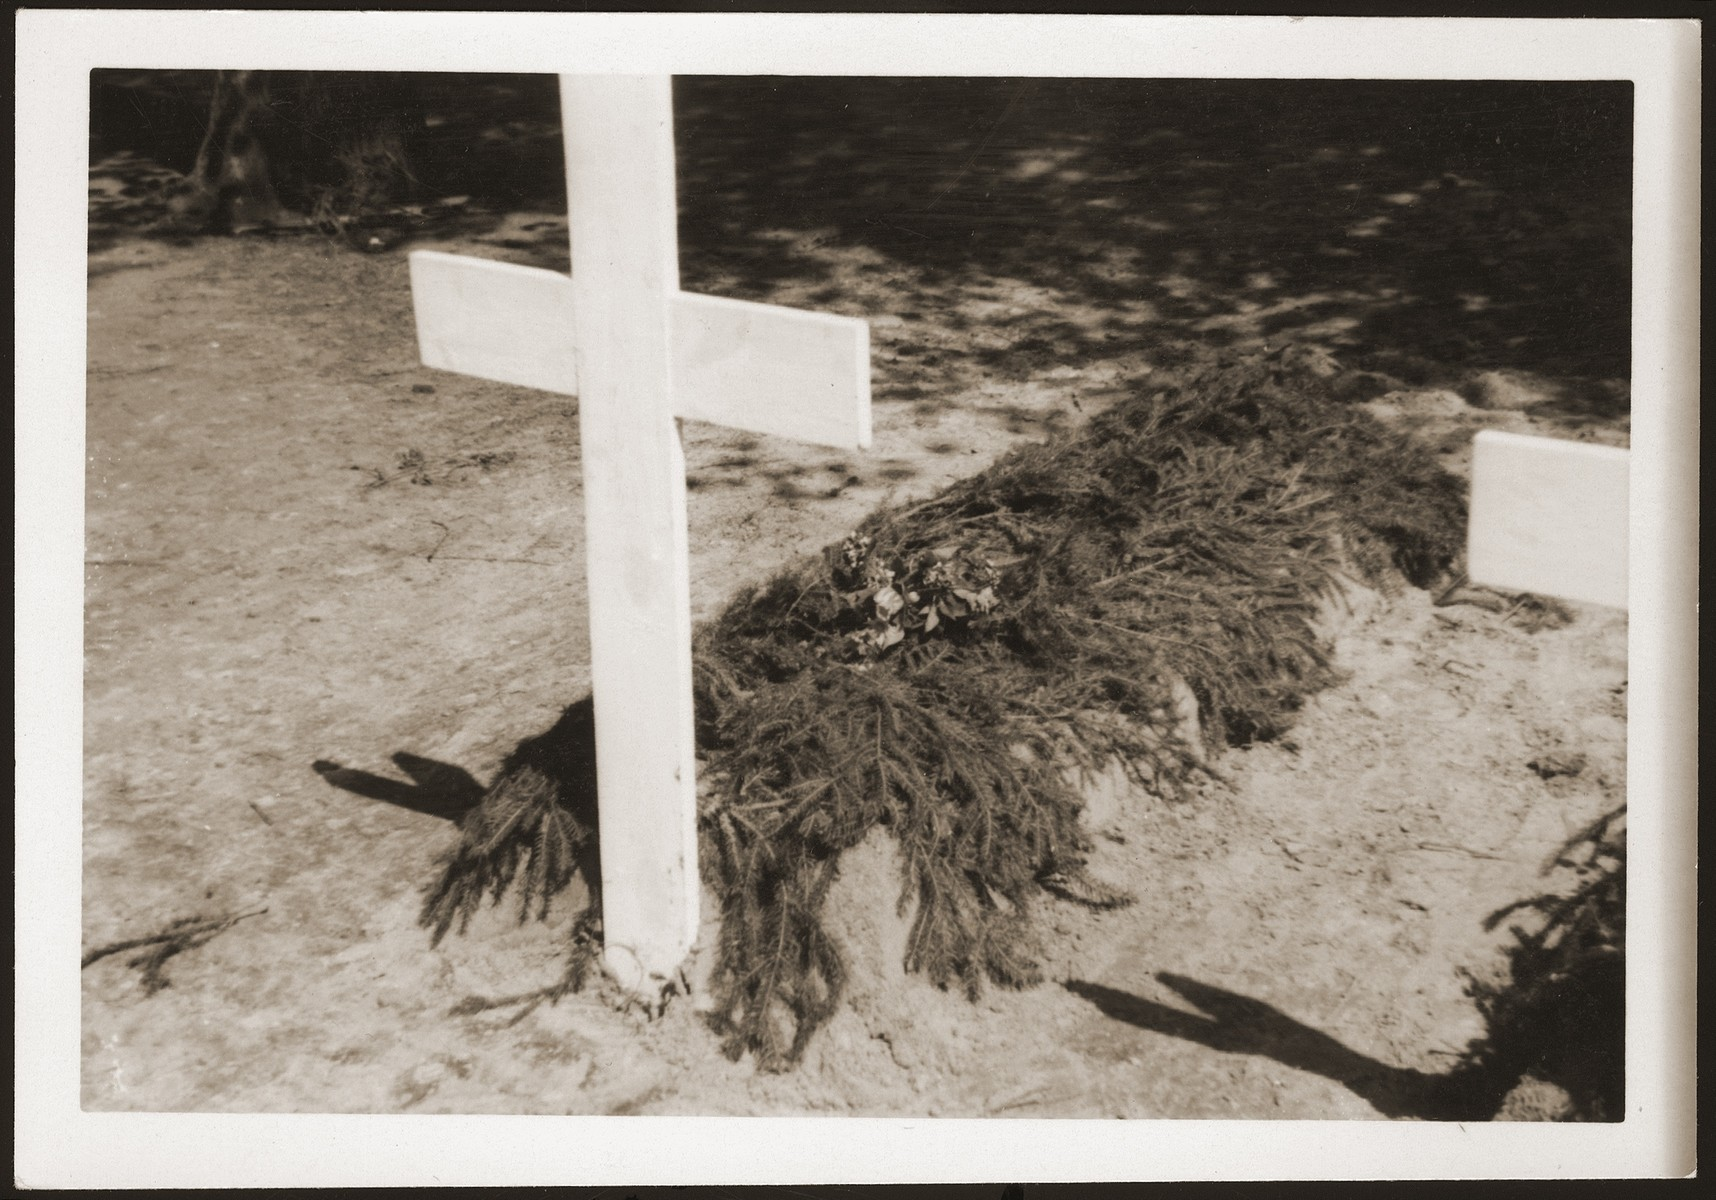 One of 200 graves dug by the people of Ludwigslust on the palace grounds of the Archduke of Mecklenburg, where they have been forced by U.S. troops to bury the bodies of prisoners killed in the Woebbelin concentration camp.